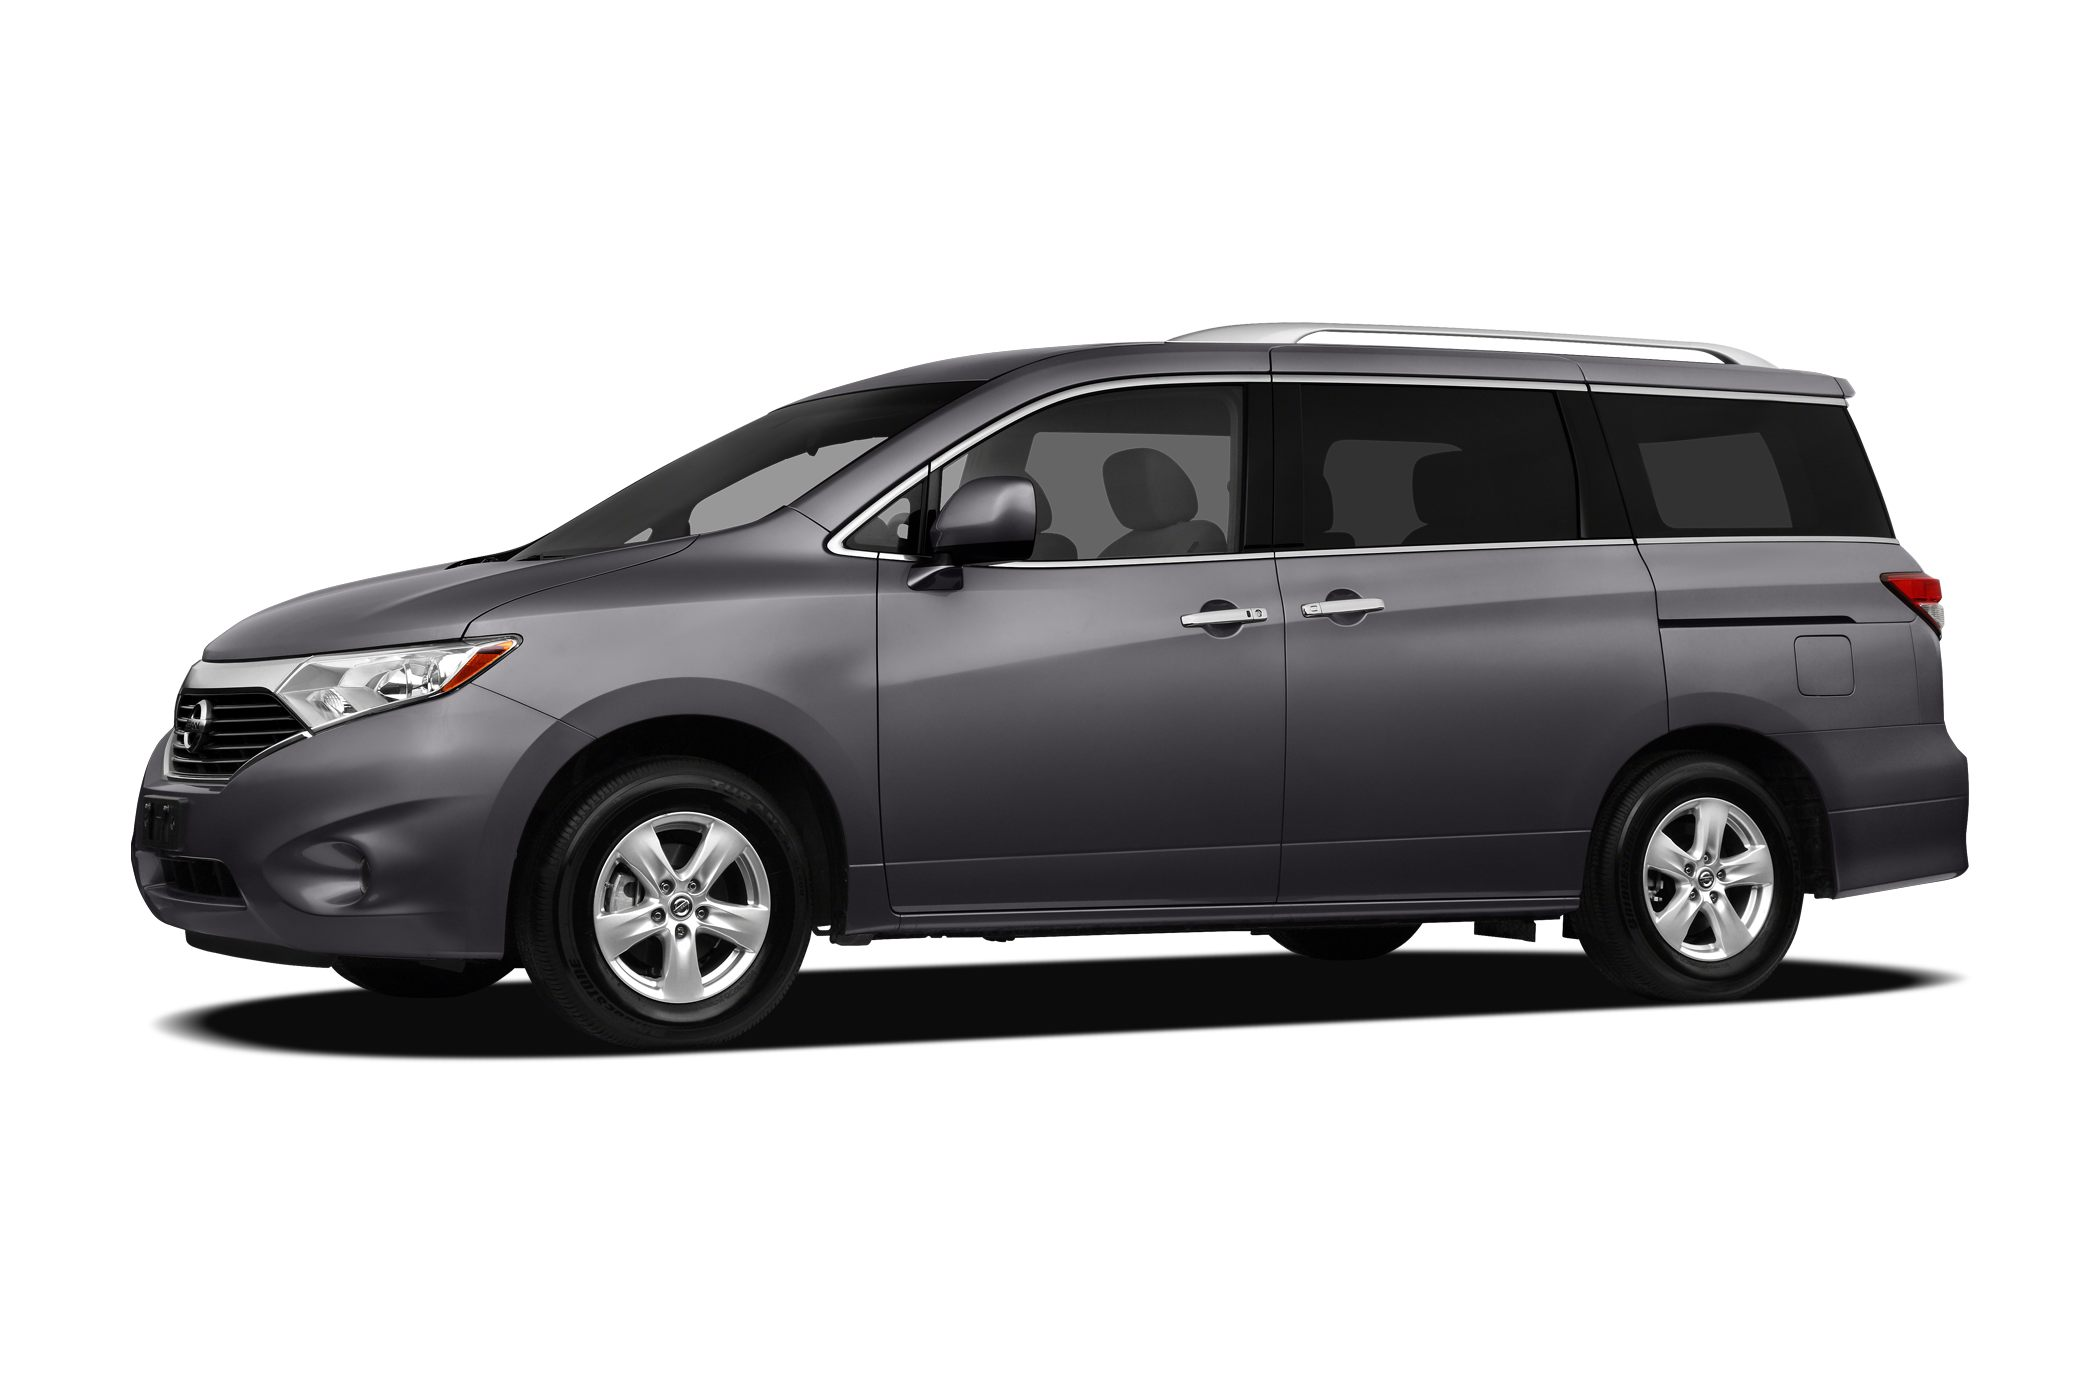 2011 Nissan Quest S Minivan for sale in Salinas for $16,988 with 53,570 miles.